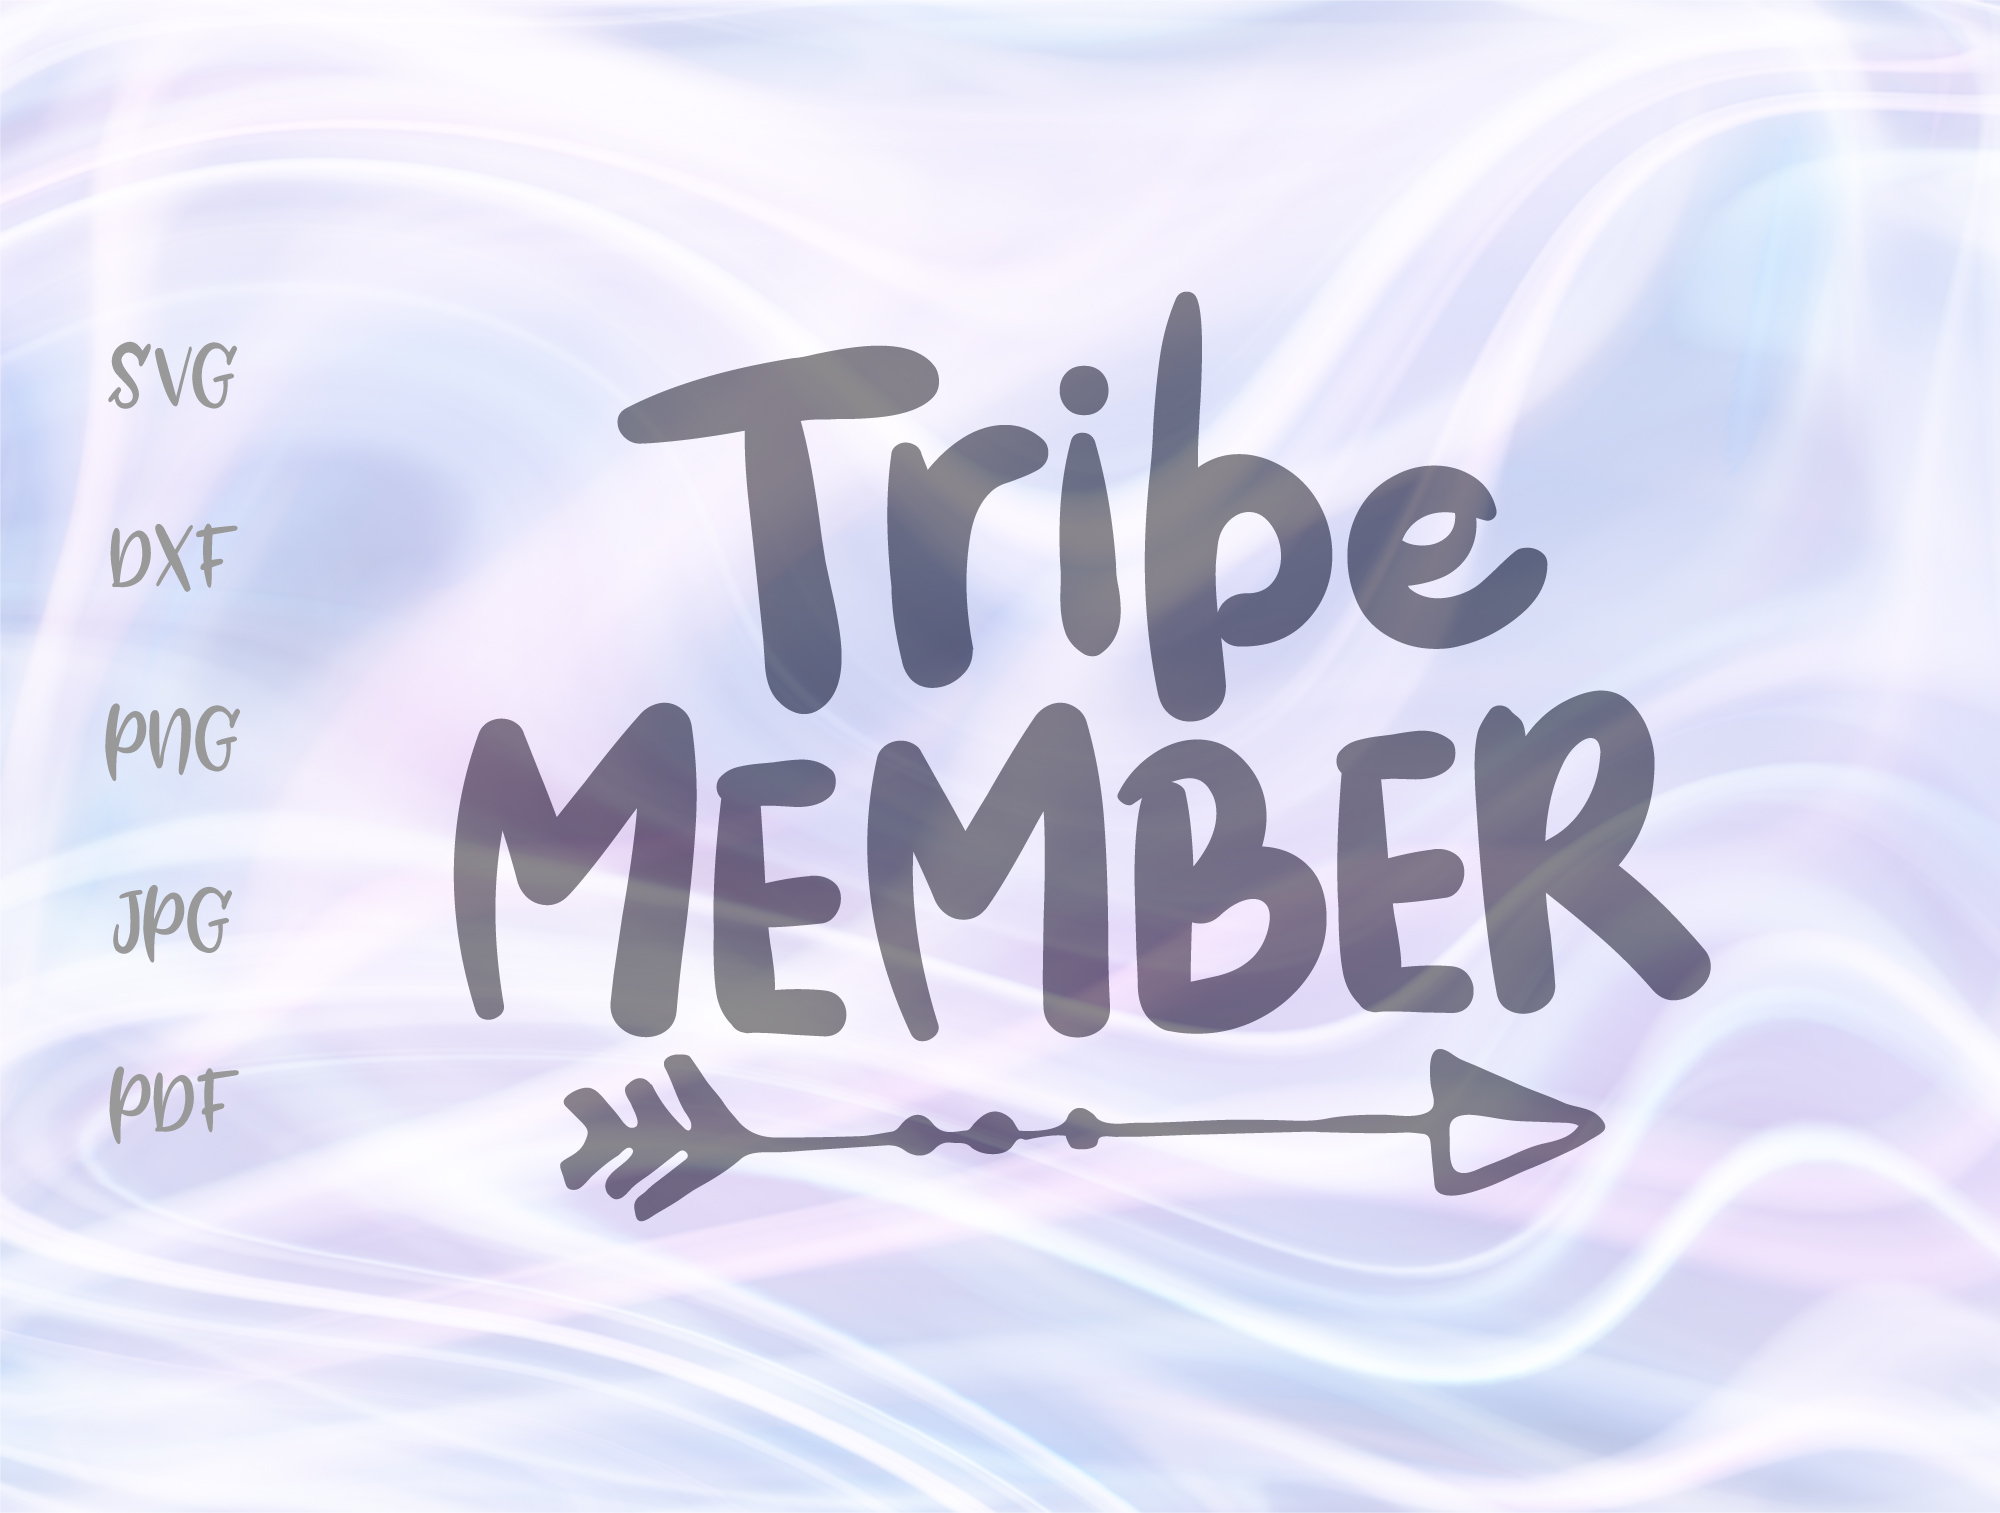 Download Free Tribe Member Graphic By Digitals By Hanna Creative Fabrica for Cricut Explore, Silhouette and other cutting machines.